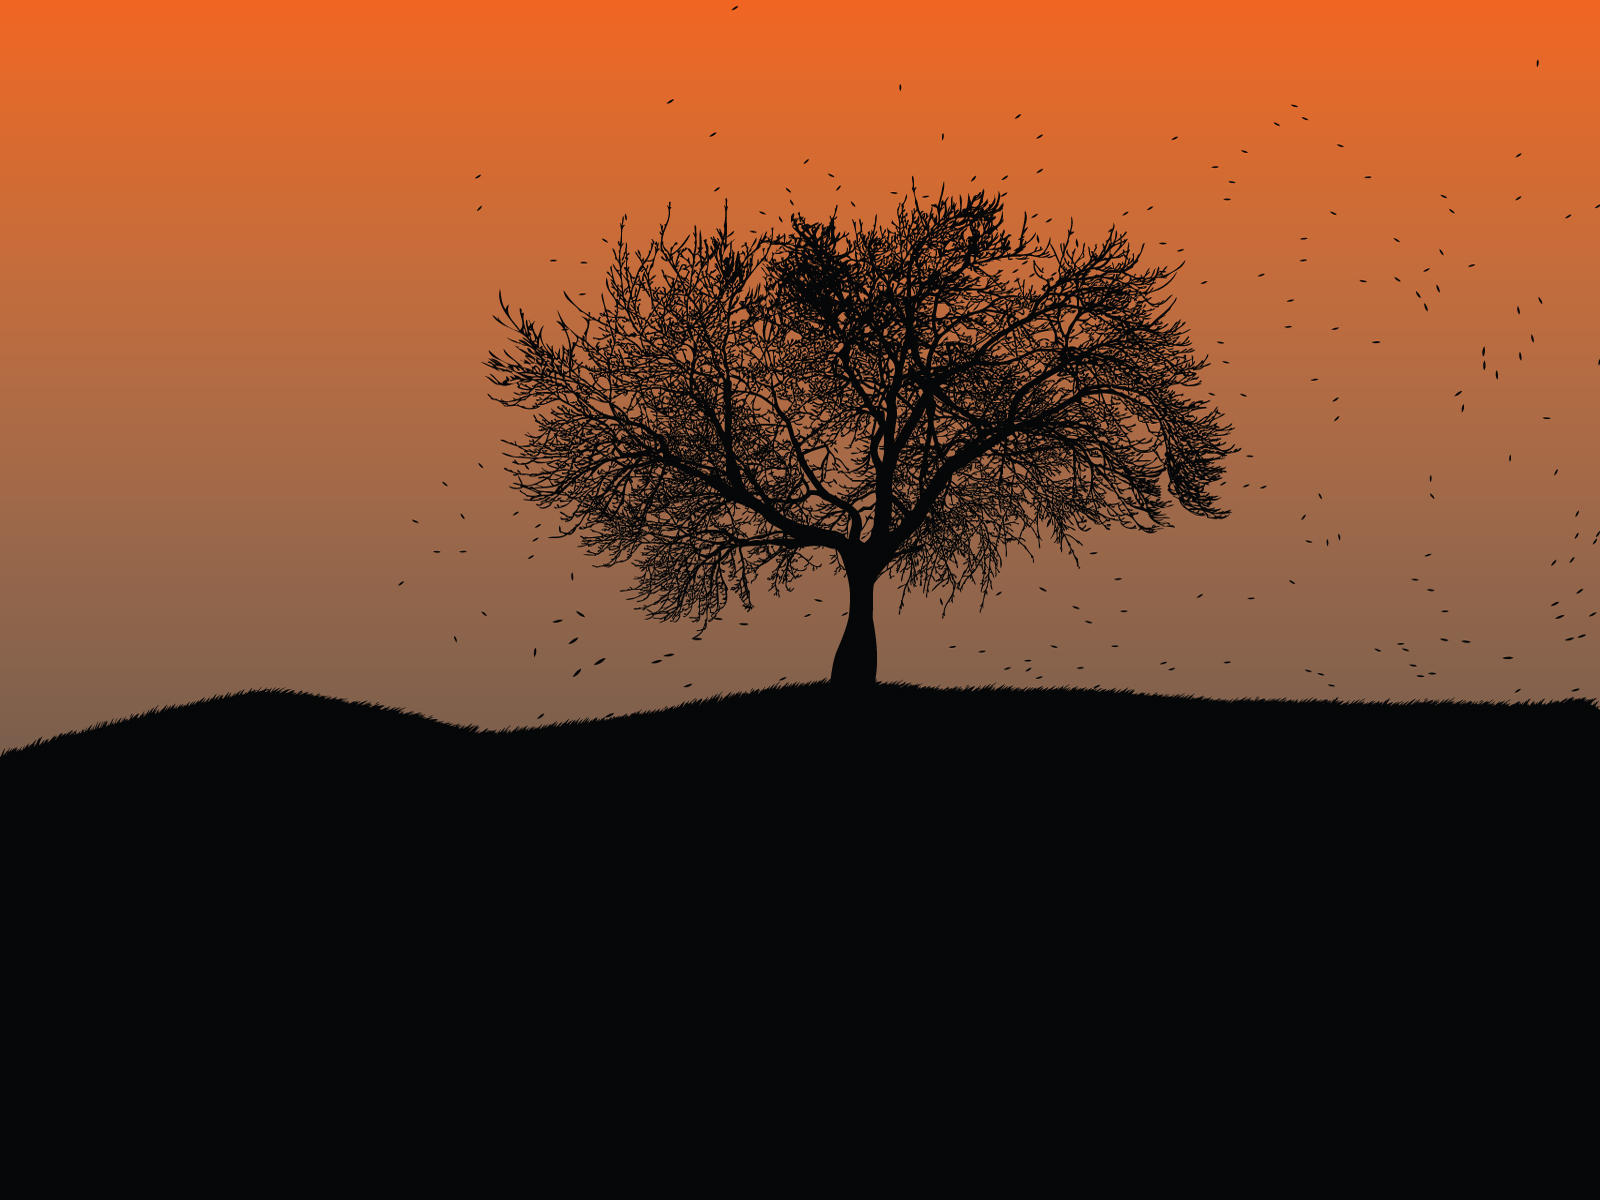 Lone tree wallpaper 1 by cheduardo2k on deviantART